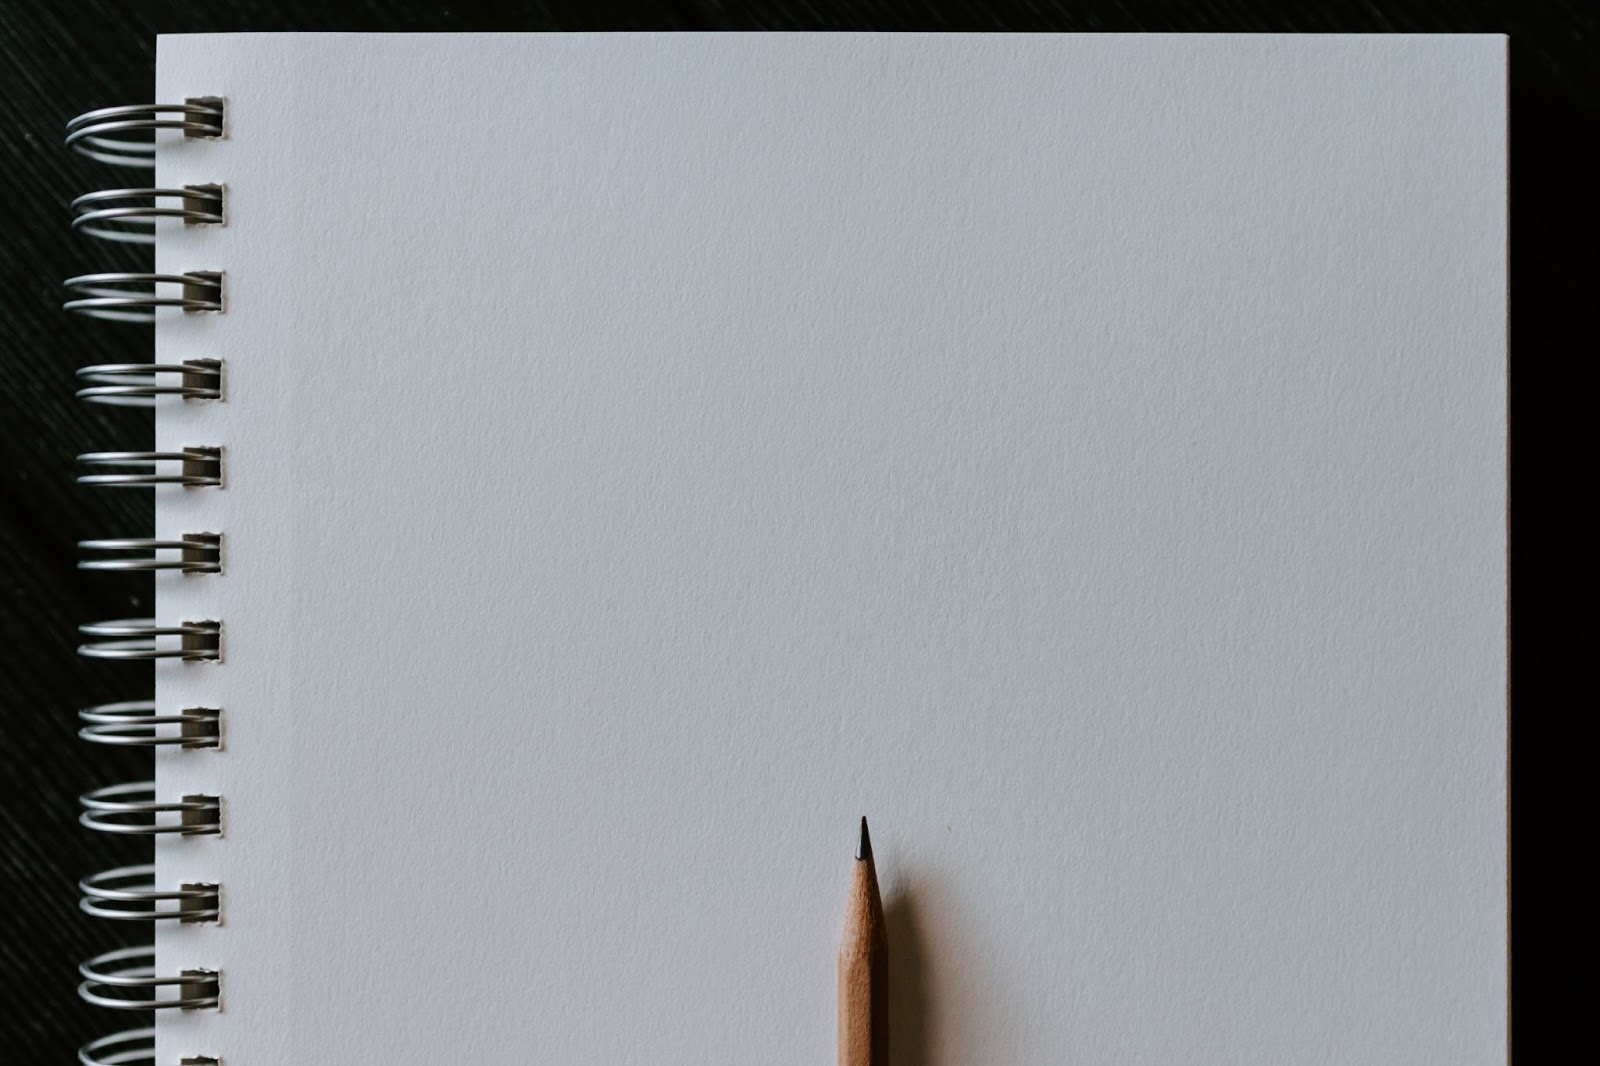 An image of a pencil and notebook.